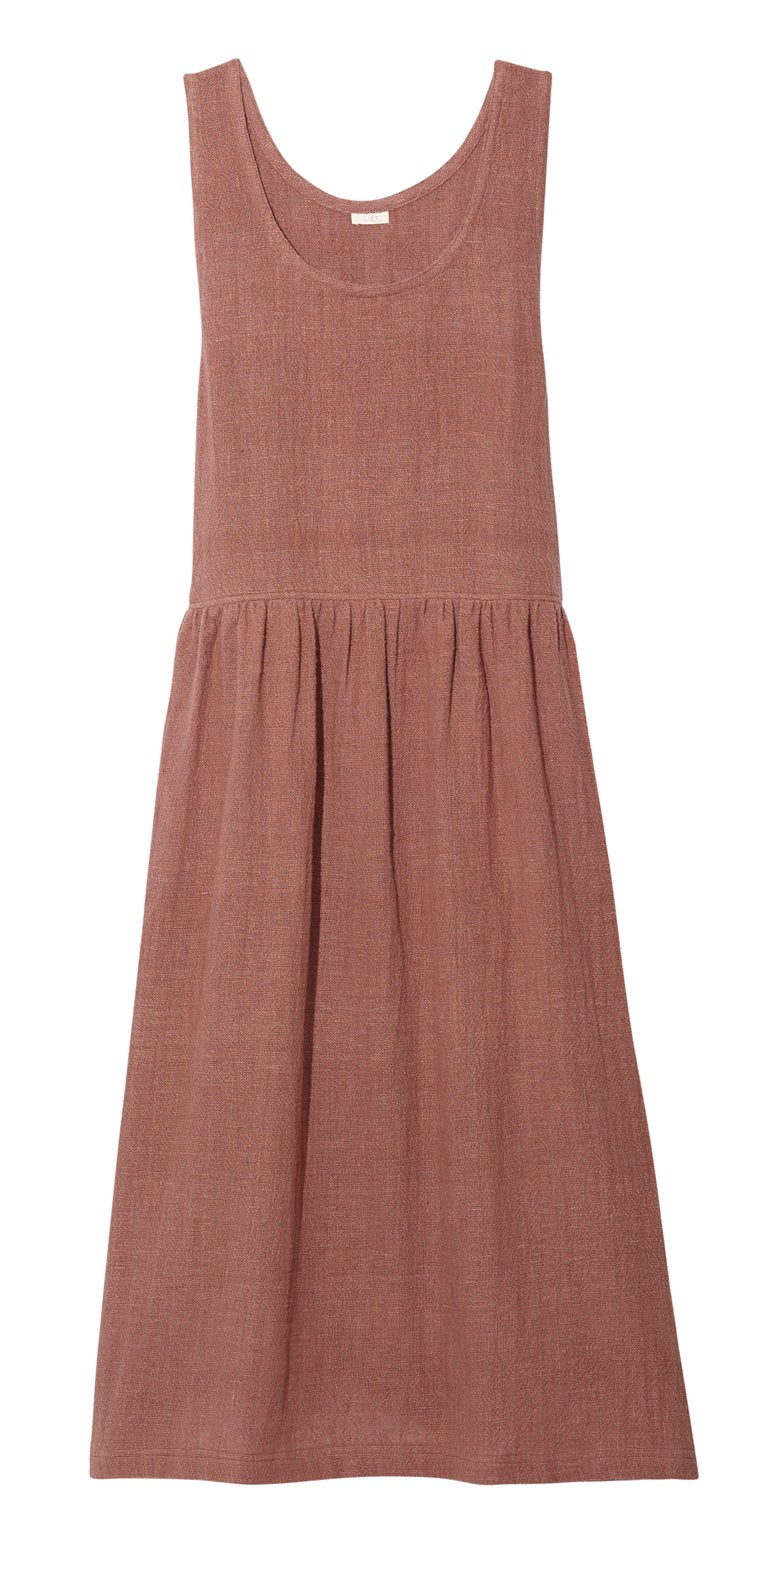 Image of JUMPER DRESS MOCHA